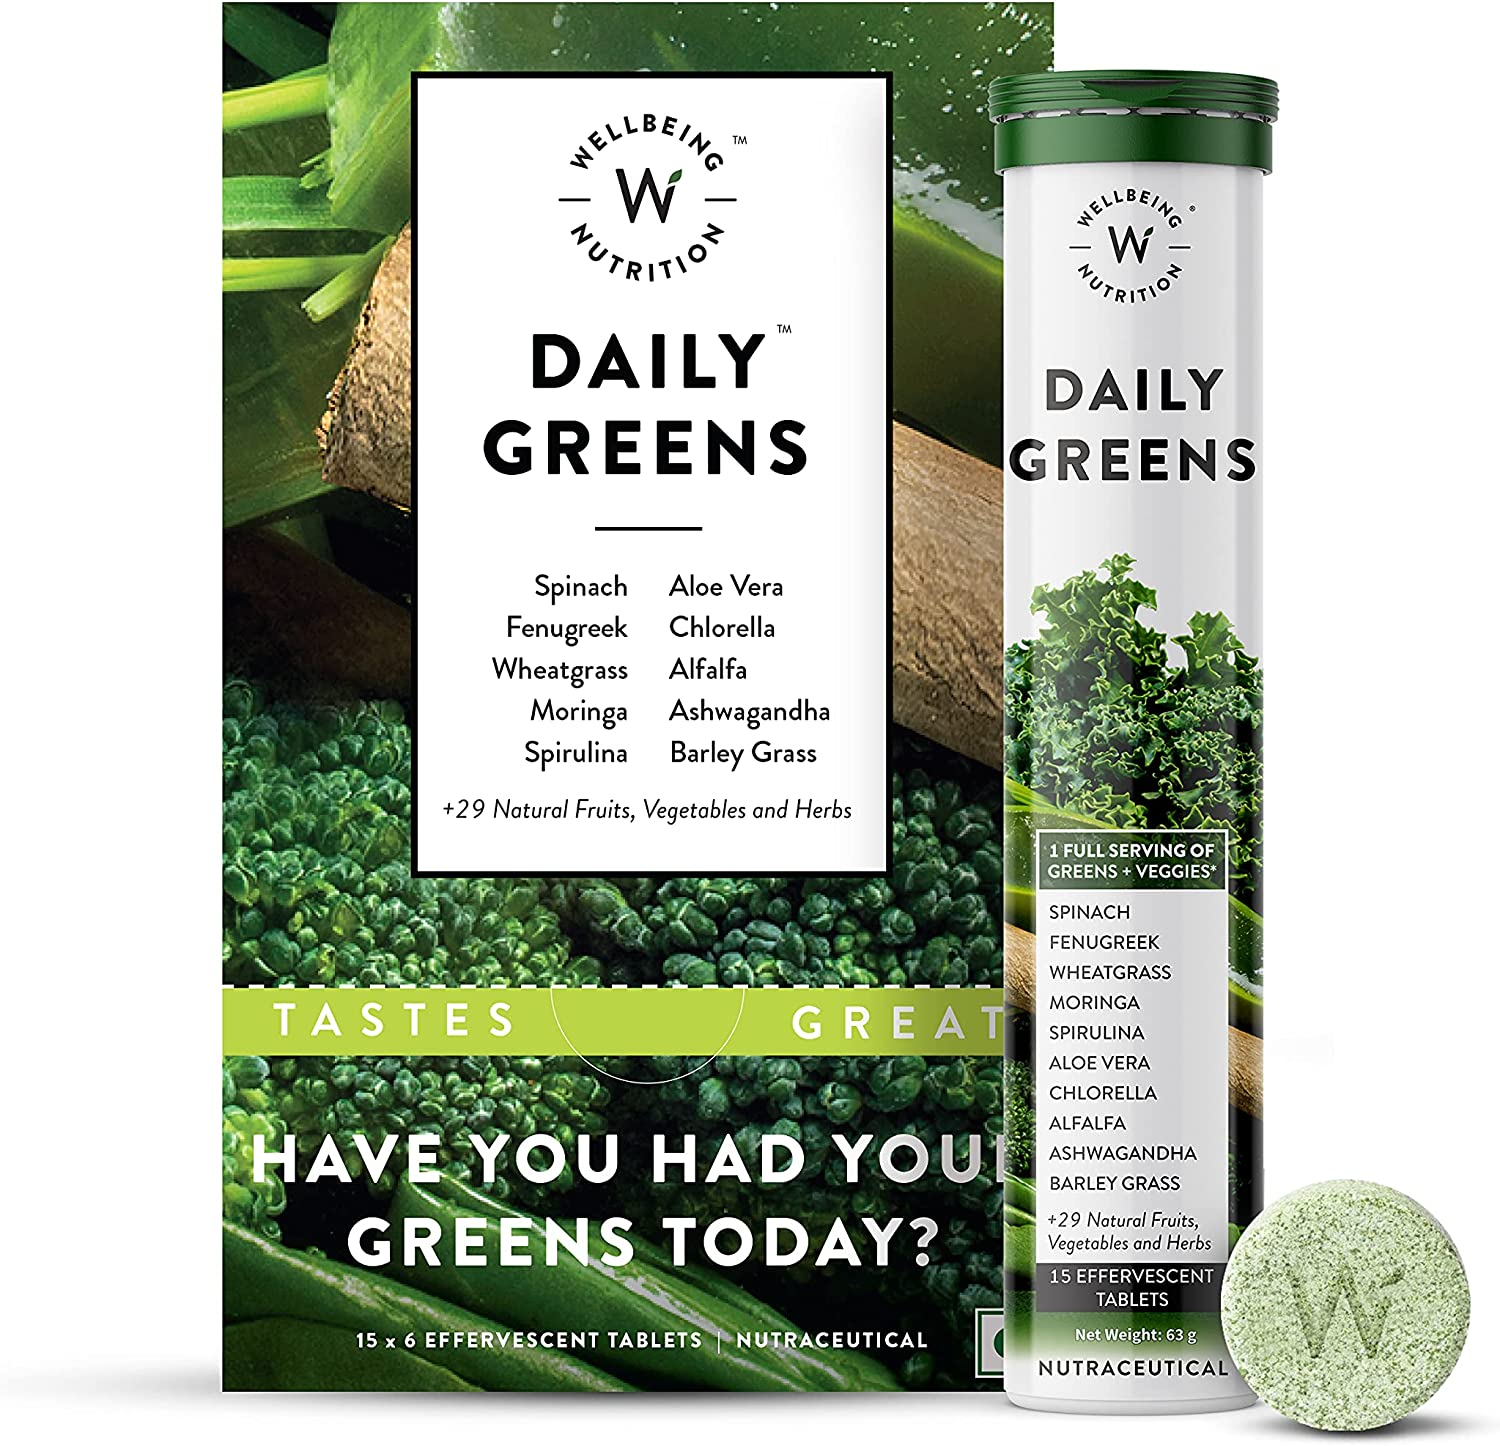 Wellbeing 売却 Nutrition Daily Greens 新品未使用正規品 Multivitamin Wholefood with Vi